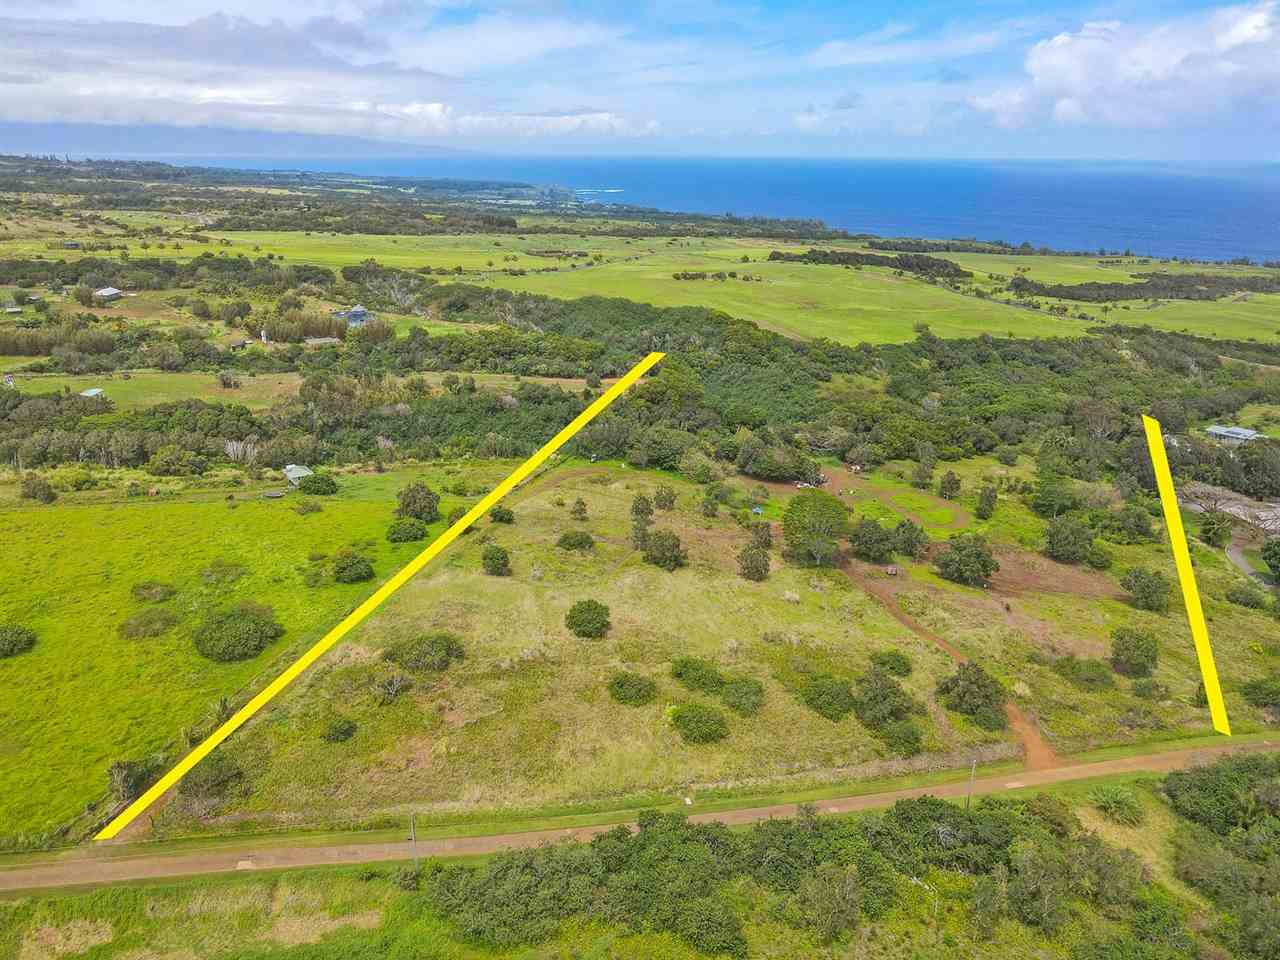 Manawai Pl Lot 3 Haiku, Hi 96708 vacant land - photo 2 of 19